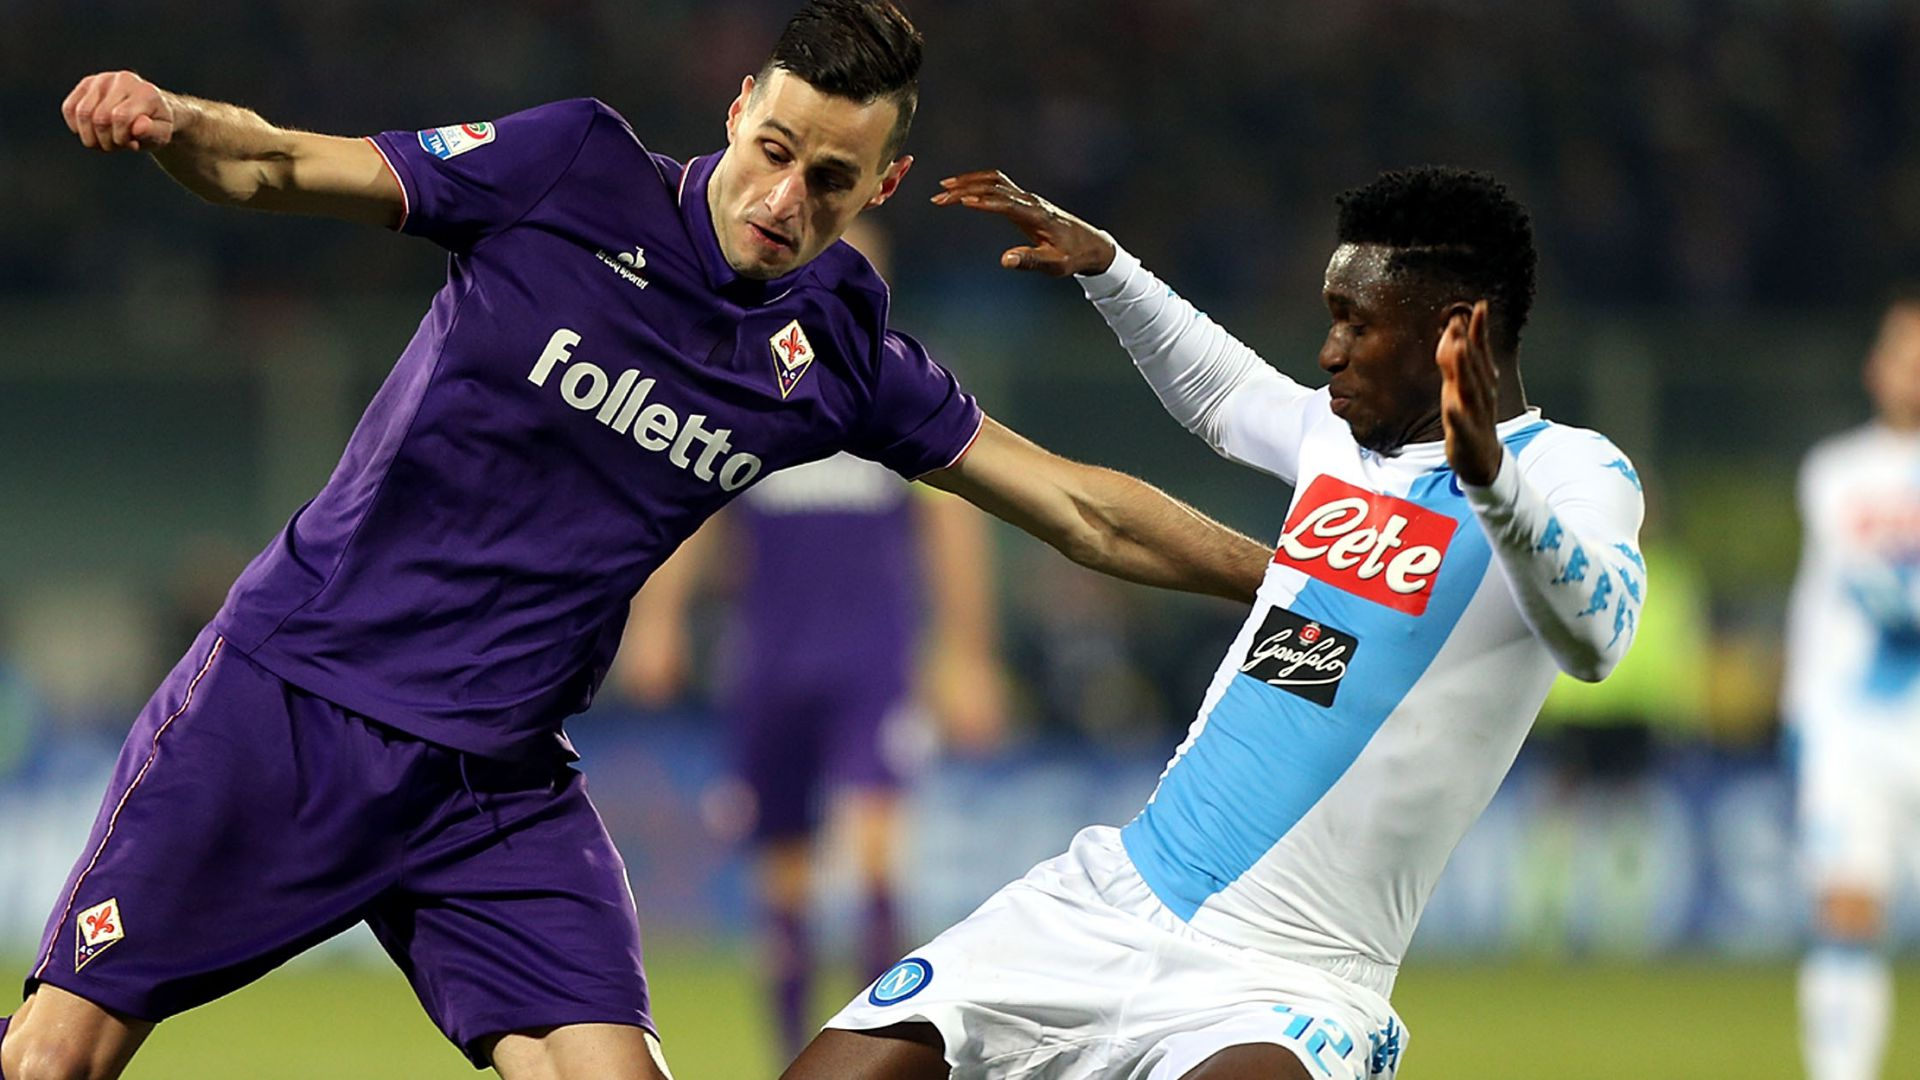 Fiorentina vs napoli betting preview goal best binary options system 2021 election